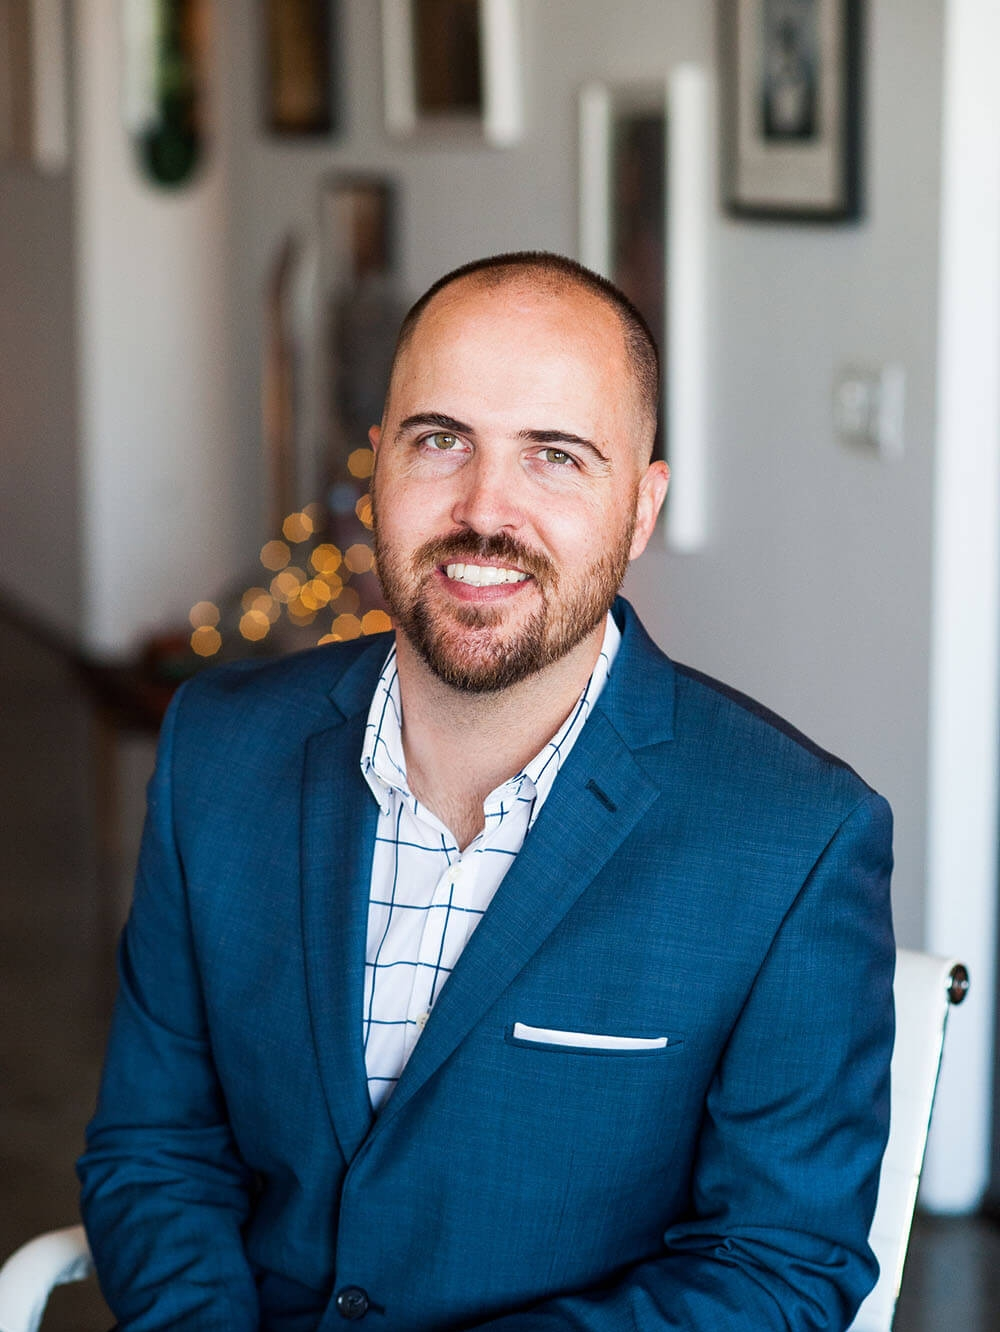 Will Hainlen Daily Operations Manager& Realtor - Will Hainlen is dedicated to oversee all of the moving parts that take place during the transaction while handling the logistics to make sure crucial goals and timelines are met. As a licensed Realtor of over 10 years he compliments The Whipple Group as the Daily Operations Manager. He also fields inquires and handles showing appointments while overseeing all the details of the escrow process. Will ensures that all transactions are working seamlessly, always keeping a close eye on the process to allow no room for errors.CABRE # 01769420